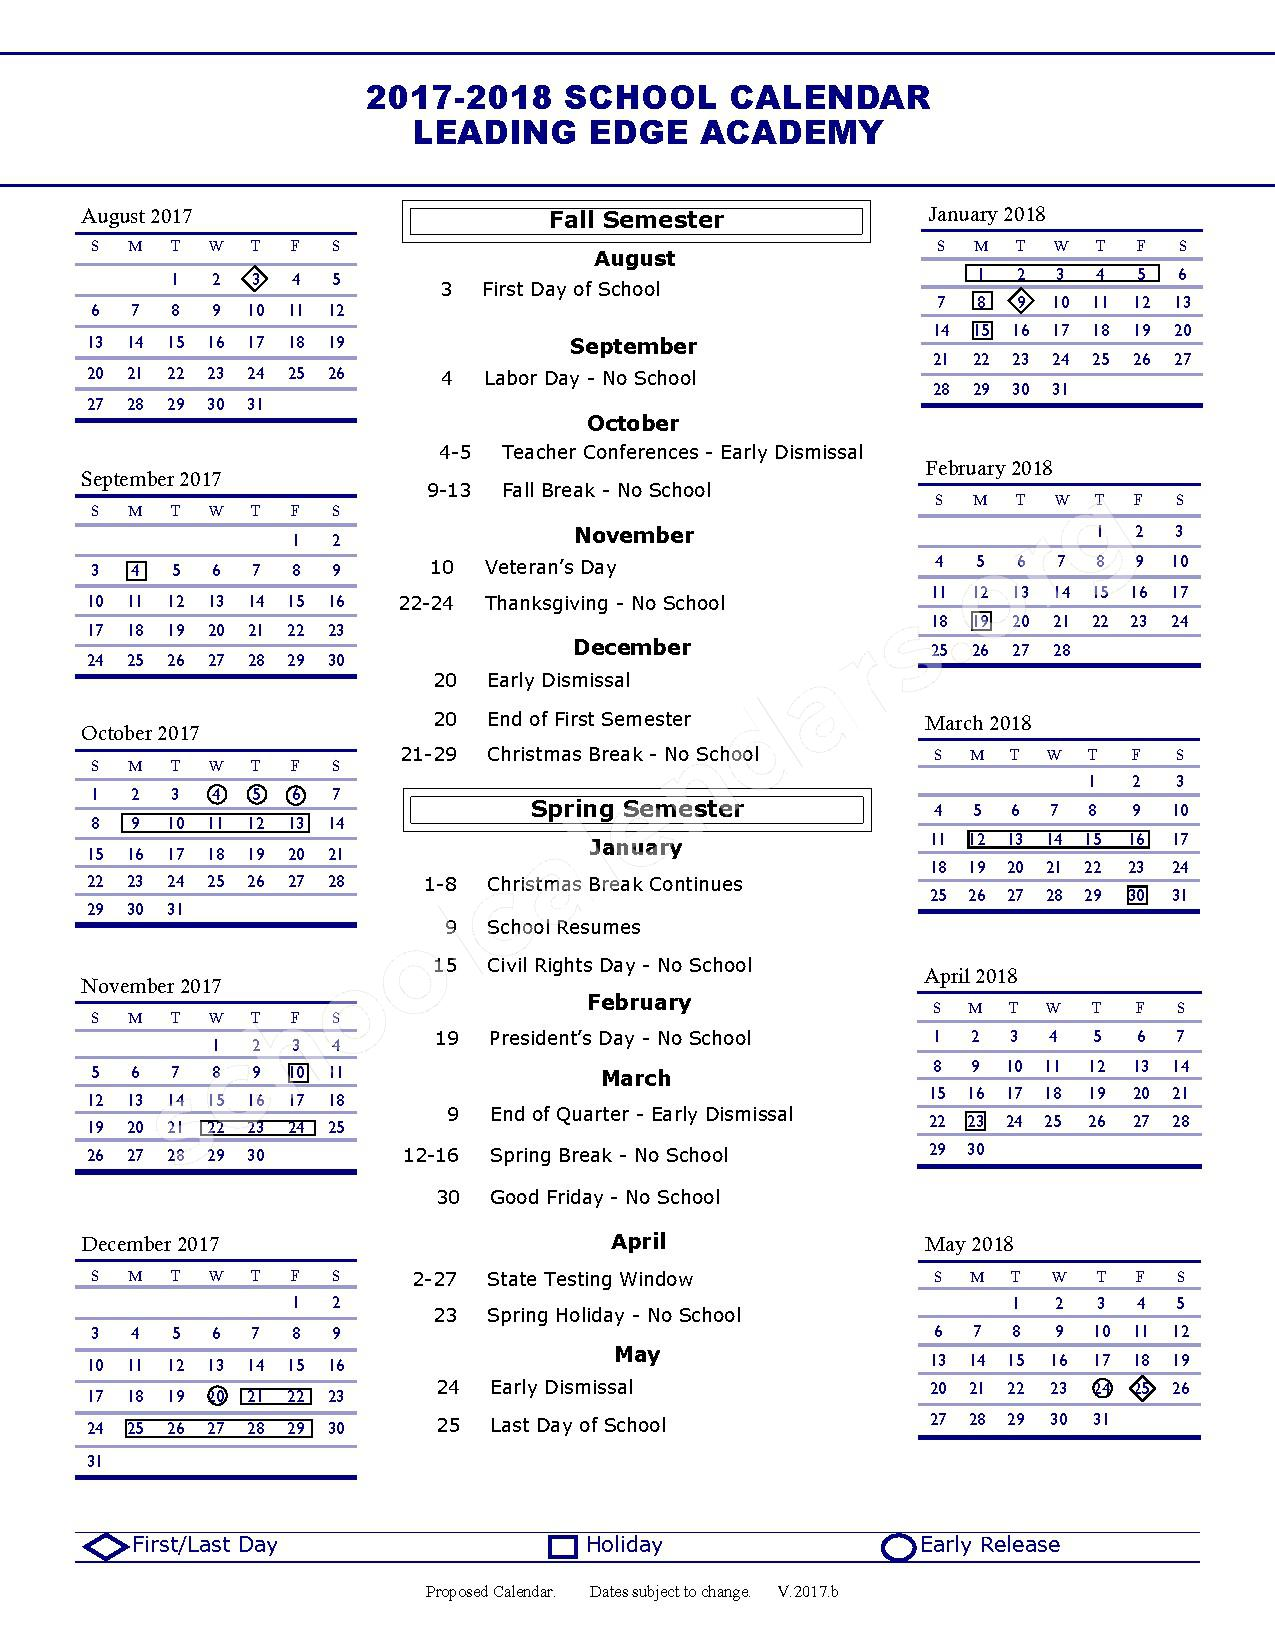 2017 - 2018 District Calendar – Leading Edge Academy Gilbert – page 1